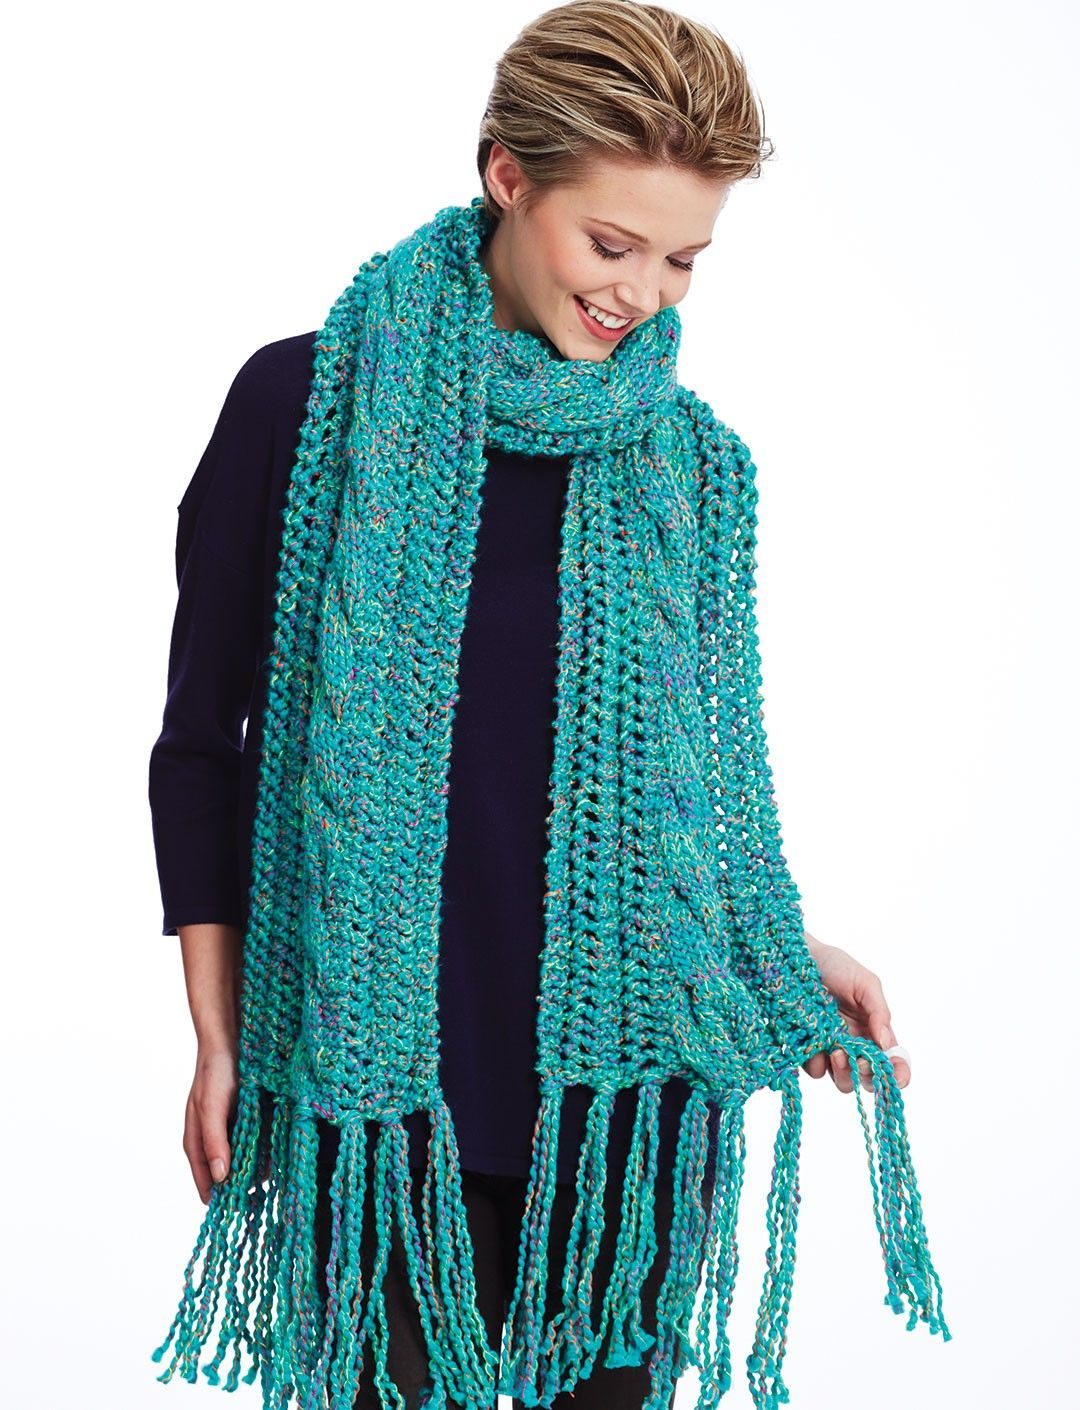 Yarnspirations.com - Bernat Ladders and Cables Scarf - Patterns ...